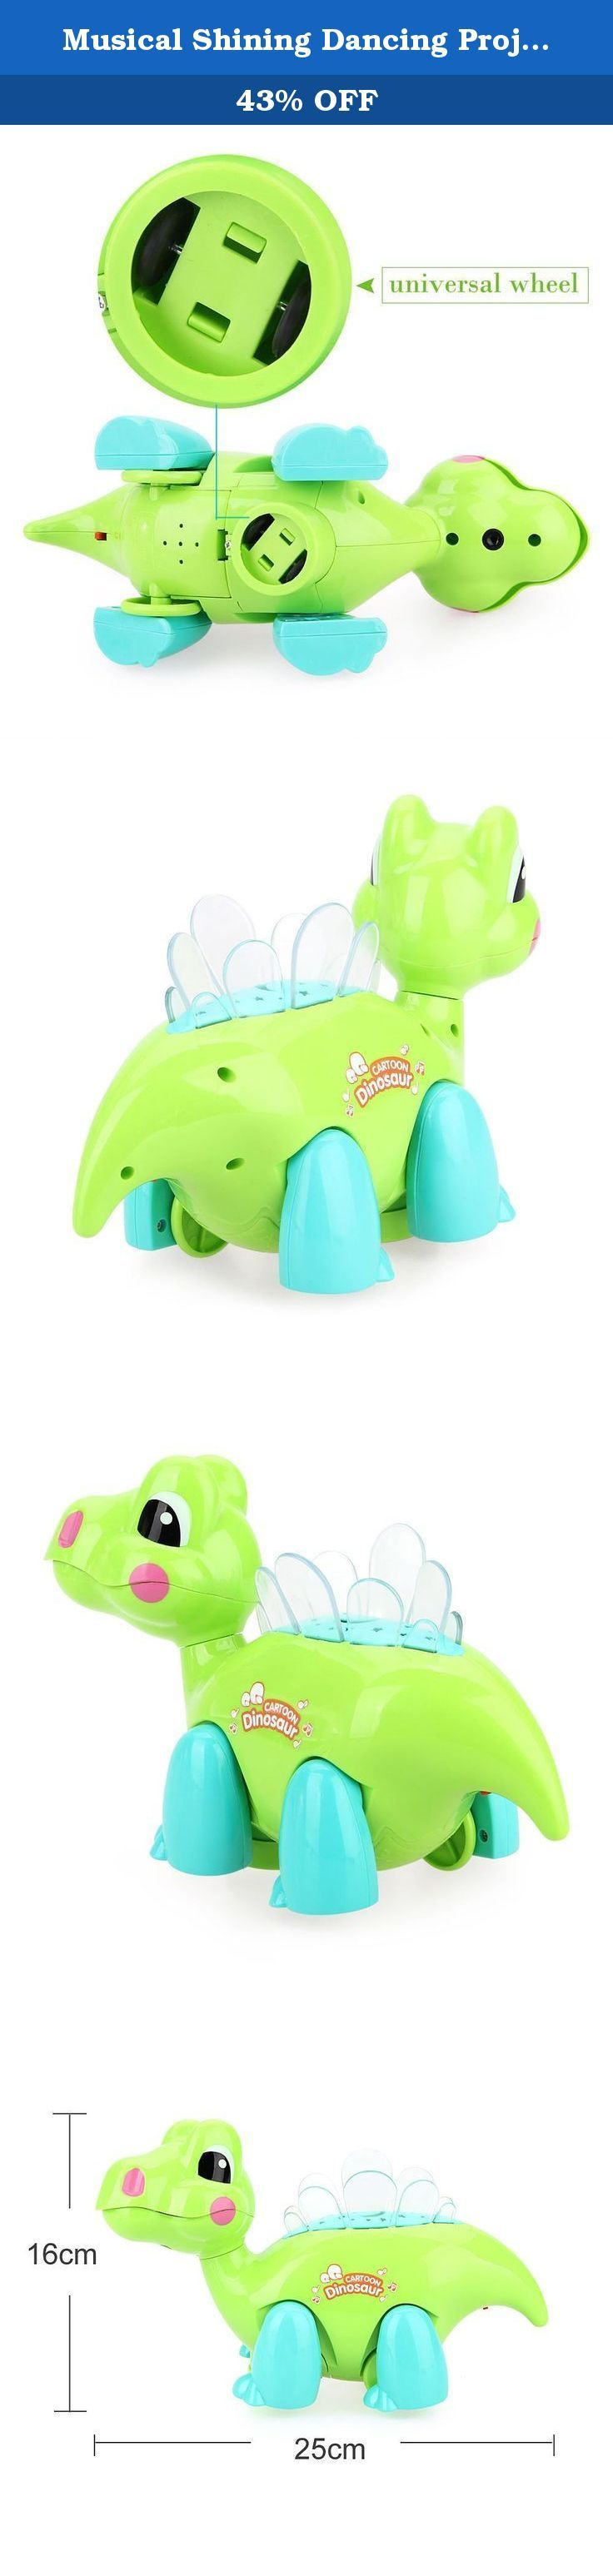 Musical Shining Dancing Projector Cartoon Dragon Educational Toys Kids Baby Gift. Brand:NEW.Colour:Green.Material:ABS.Dinosaur Toys *1. Description 1. Environmental resistance to slam the ABS material, wear-resistant and easy to clean, high strength not easily scratched, smooth surface cleaning. 2. Blunt human design, prevent the use of children in the process of scratching the skin, use a more secure. 3. The feature-rich, played a unique, beautiful songs, limb walking, smart universal...